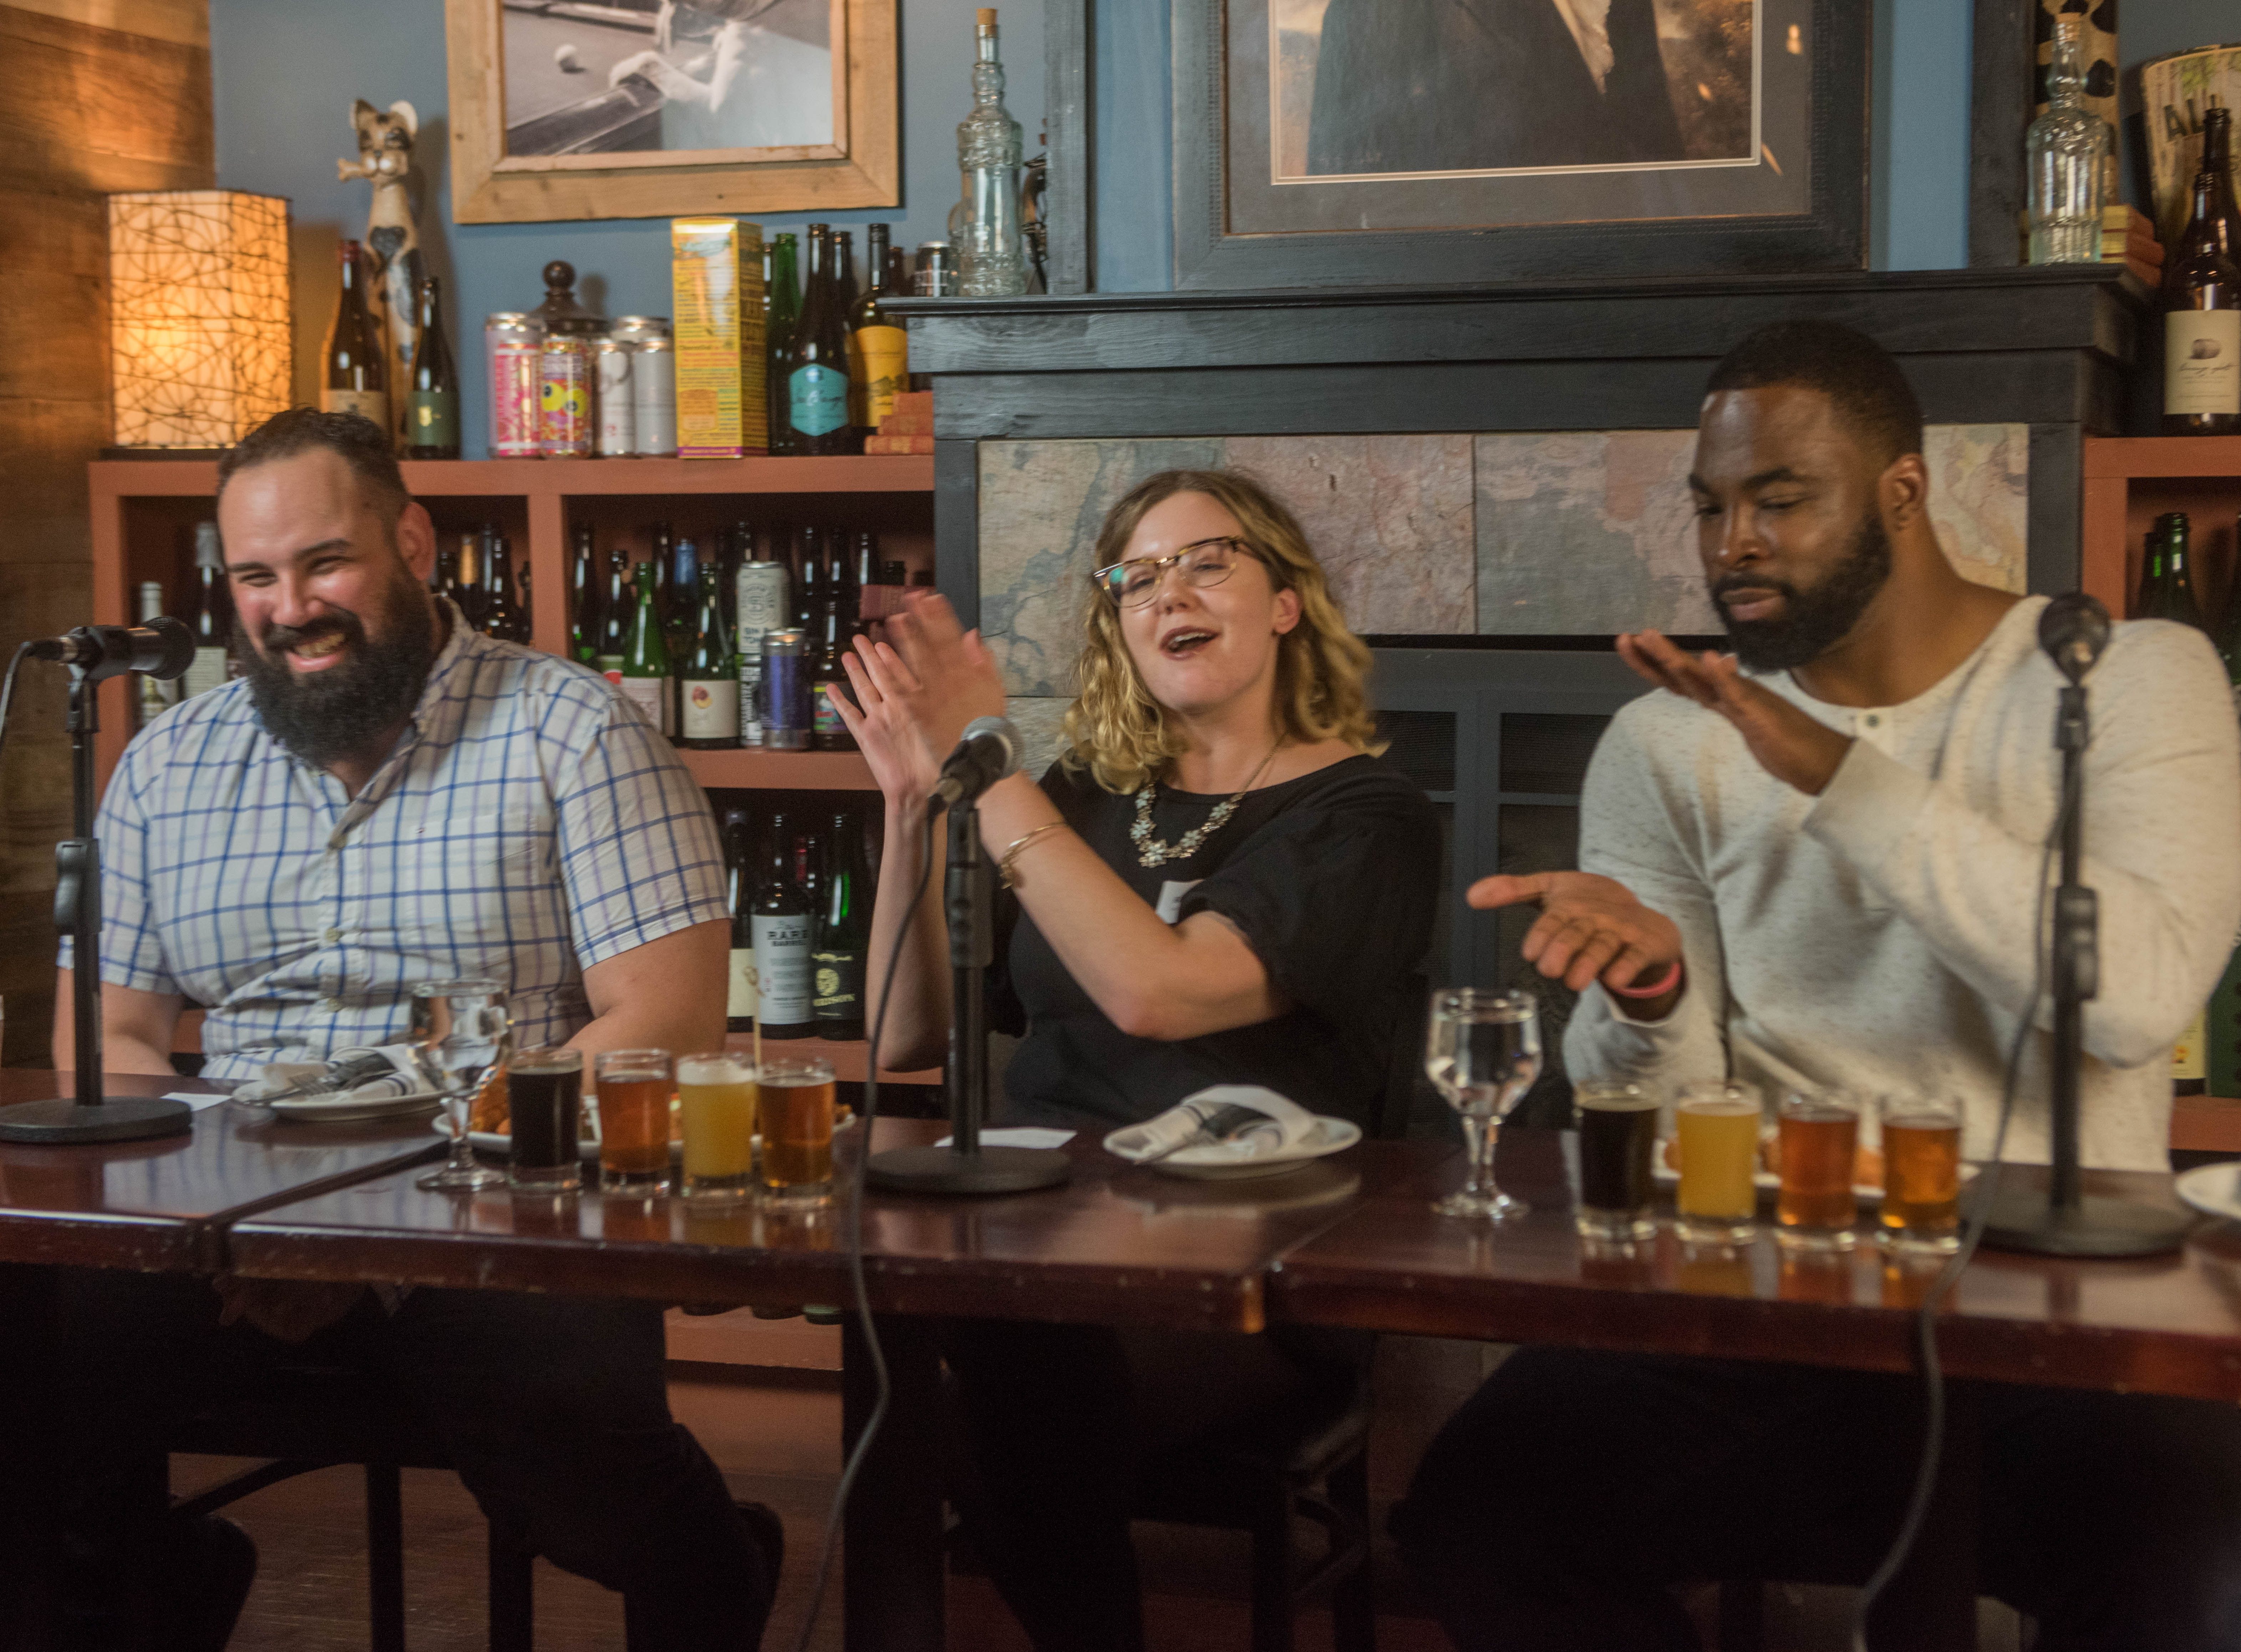 Albert Camacho, Rebecca King and Justin Tuck. (201) Magazine and NorthJersey.com held Taste Test Tuesday at he Dog and Cask in Rochelle Park with this months cover model, Lauran Tuck and former cover model and former NY Giant Justin Tuck. 11/13/2018